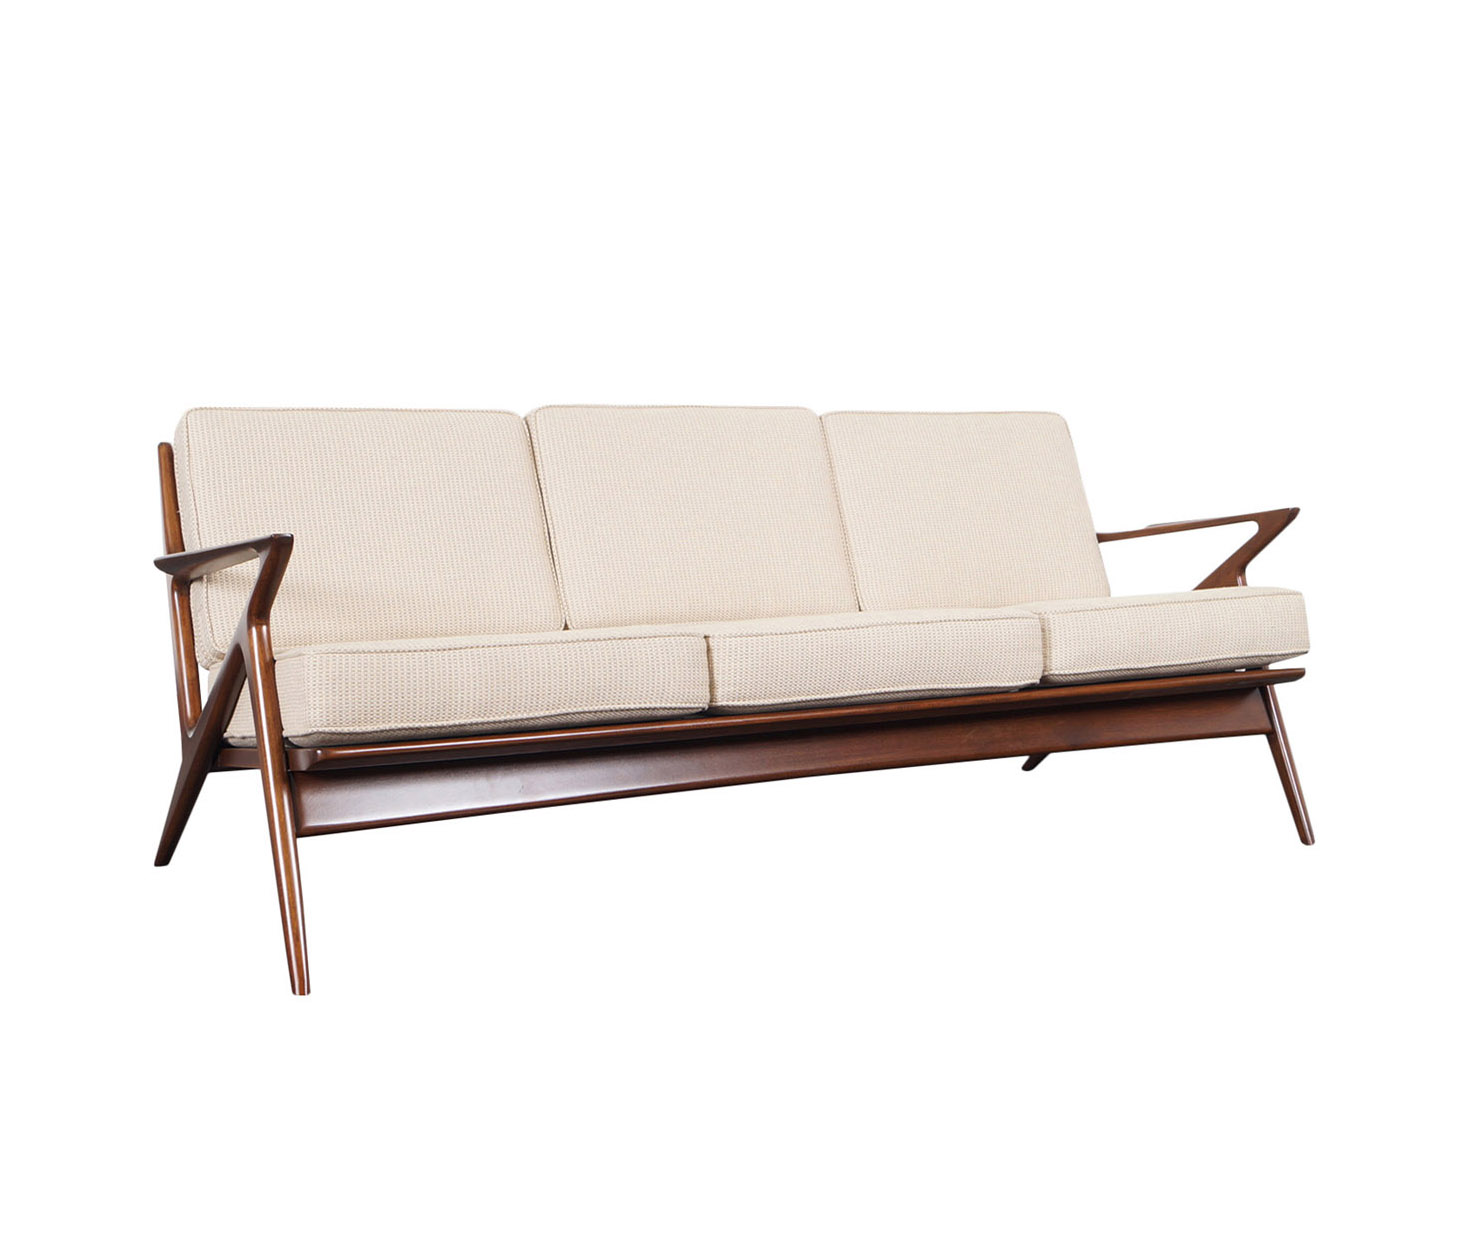 Danish Modern Z Sofa by Poul Jensen for Selig